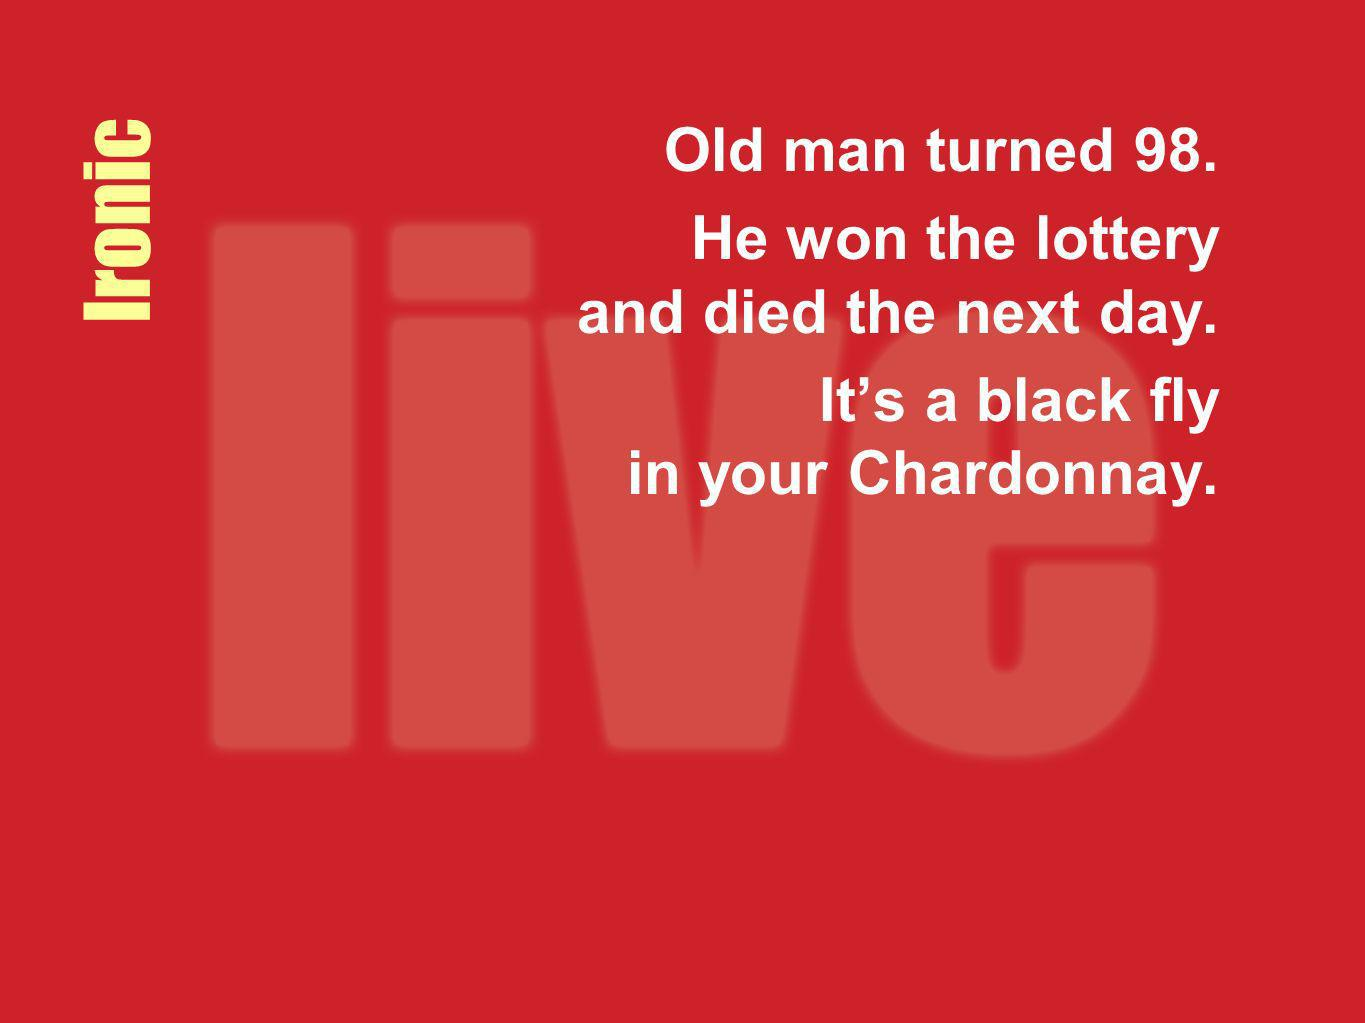 Ironic Old man turned 98. He won the lottery and died the next day. Its a black fly in your Chardonnay.